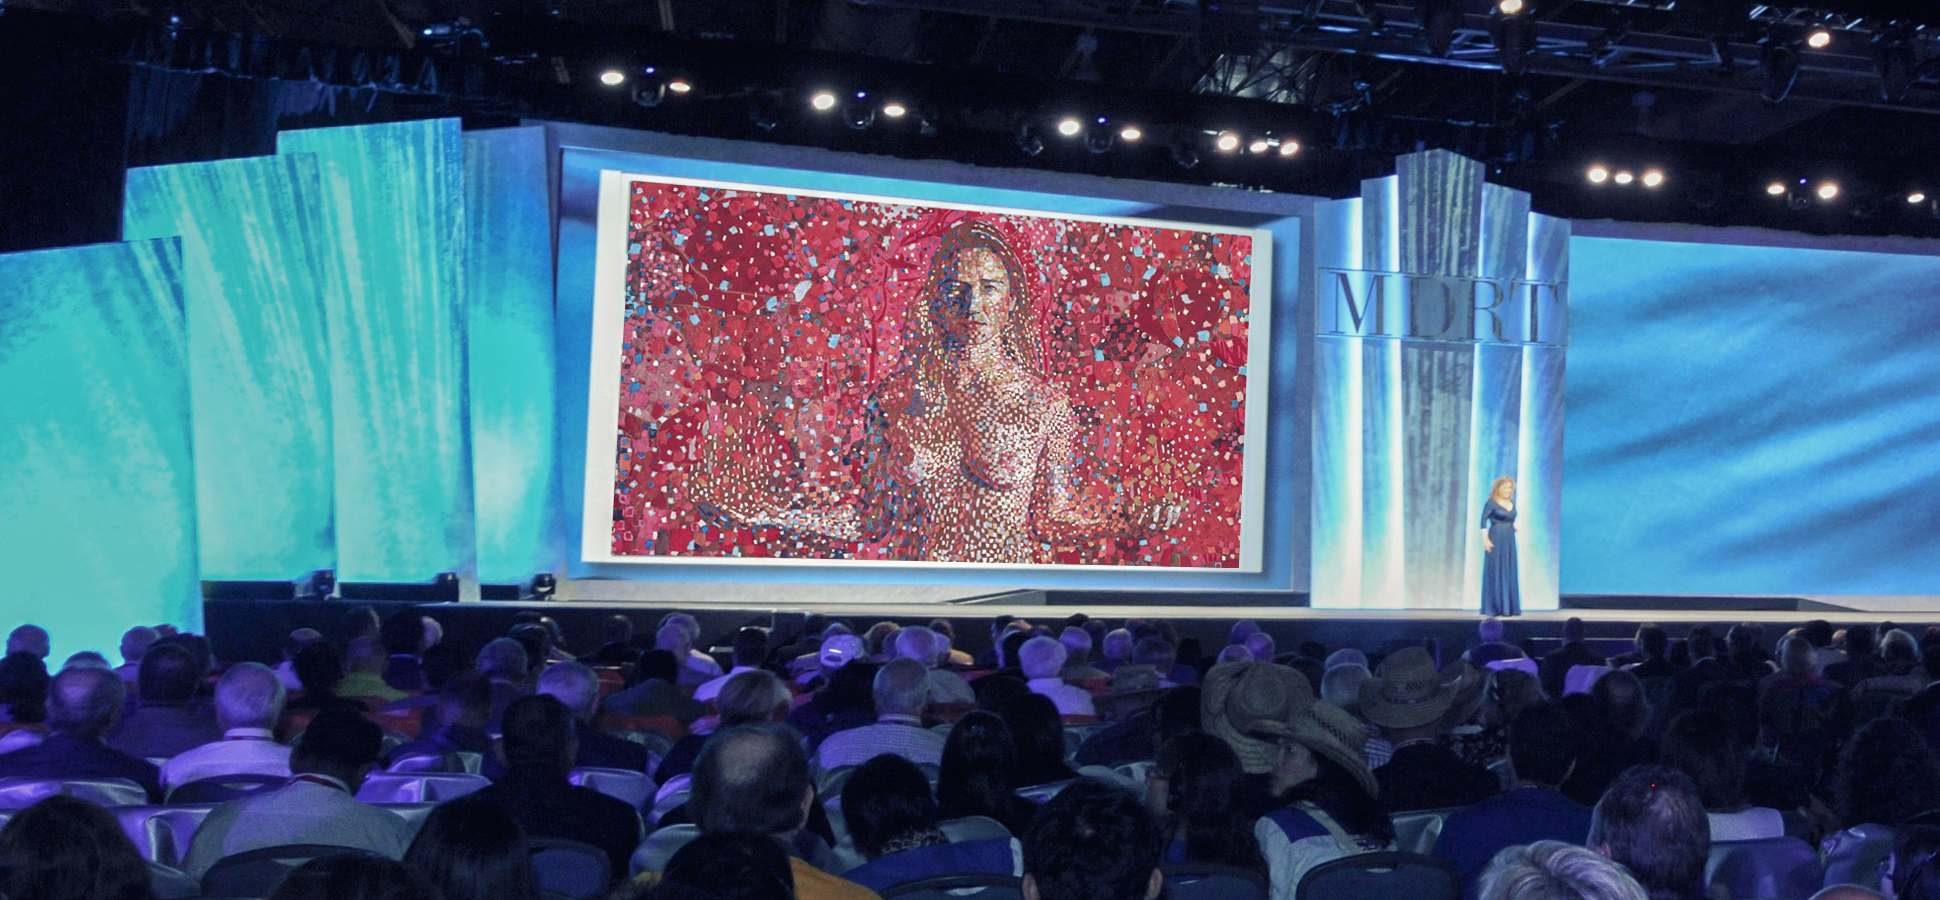 Allison Massari delivering her keynote to 8,600 people from 75 countries at Million Dollar Round Table in 2013.